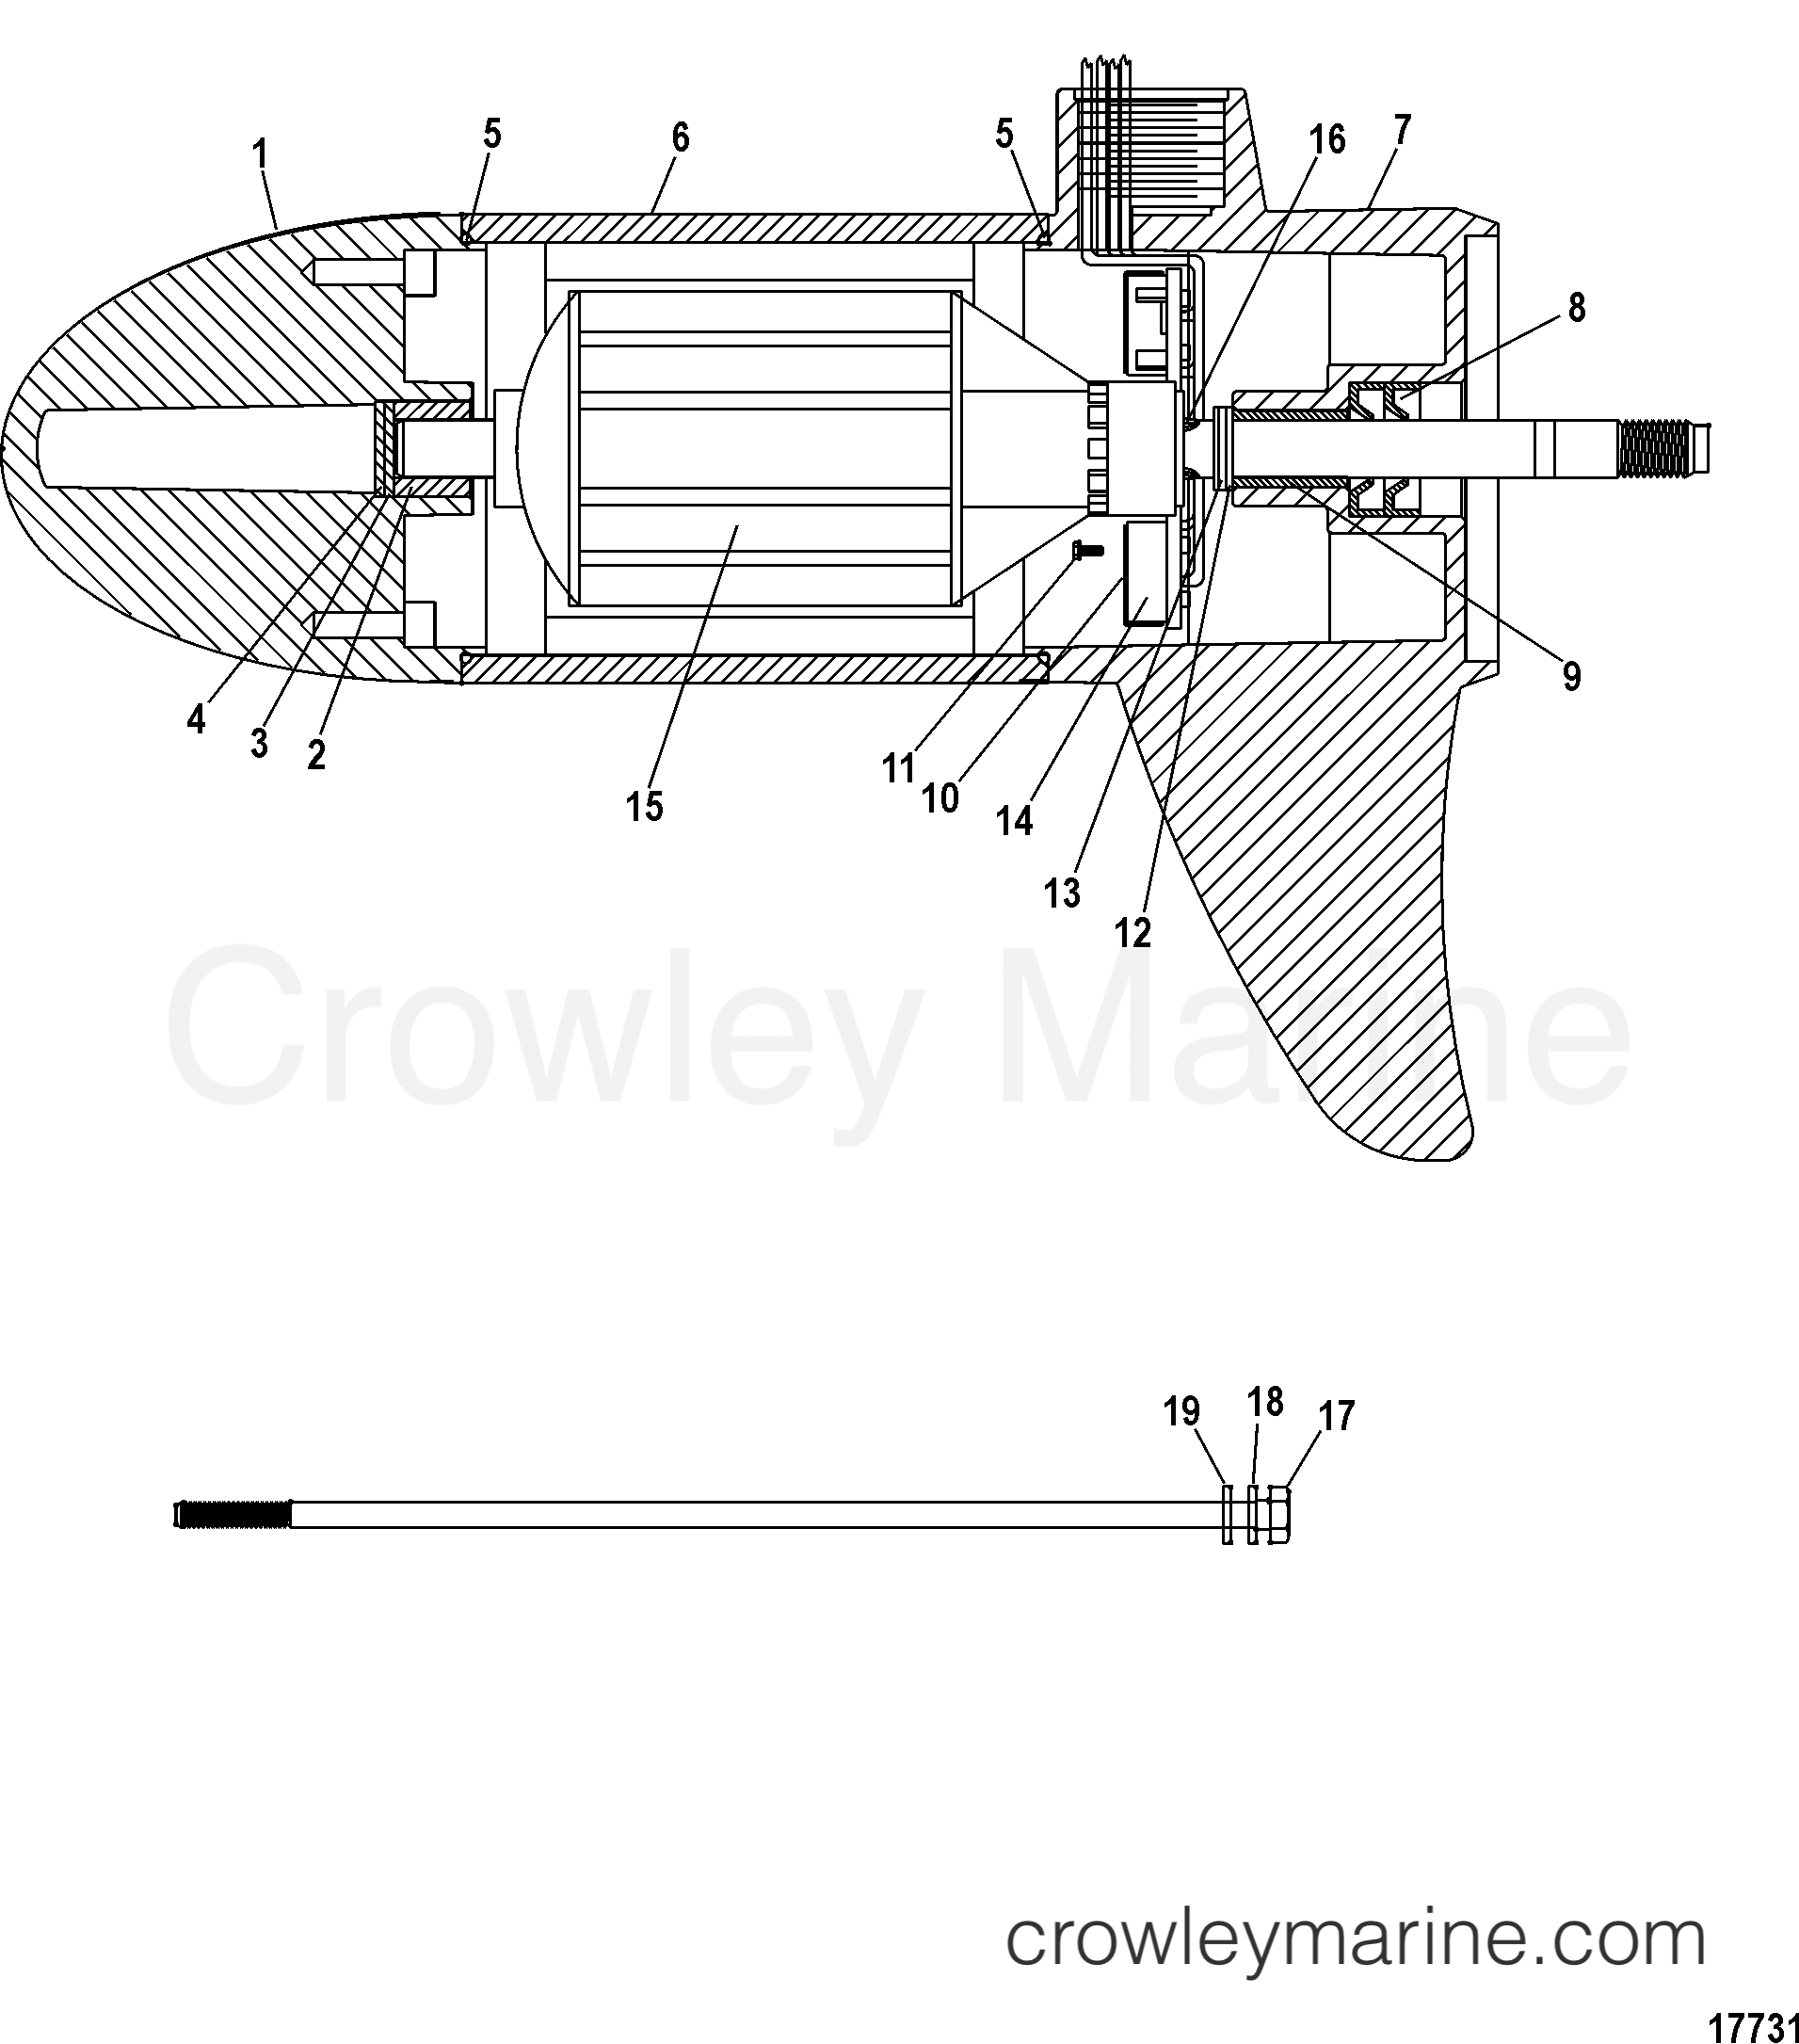 2006 MotorGuide 12V [MOTORGUIDE] - 921310210 - LOWER UNIT ASSEMBLY(30# - 5/2 SPEED) (MHM39706T) section